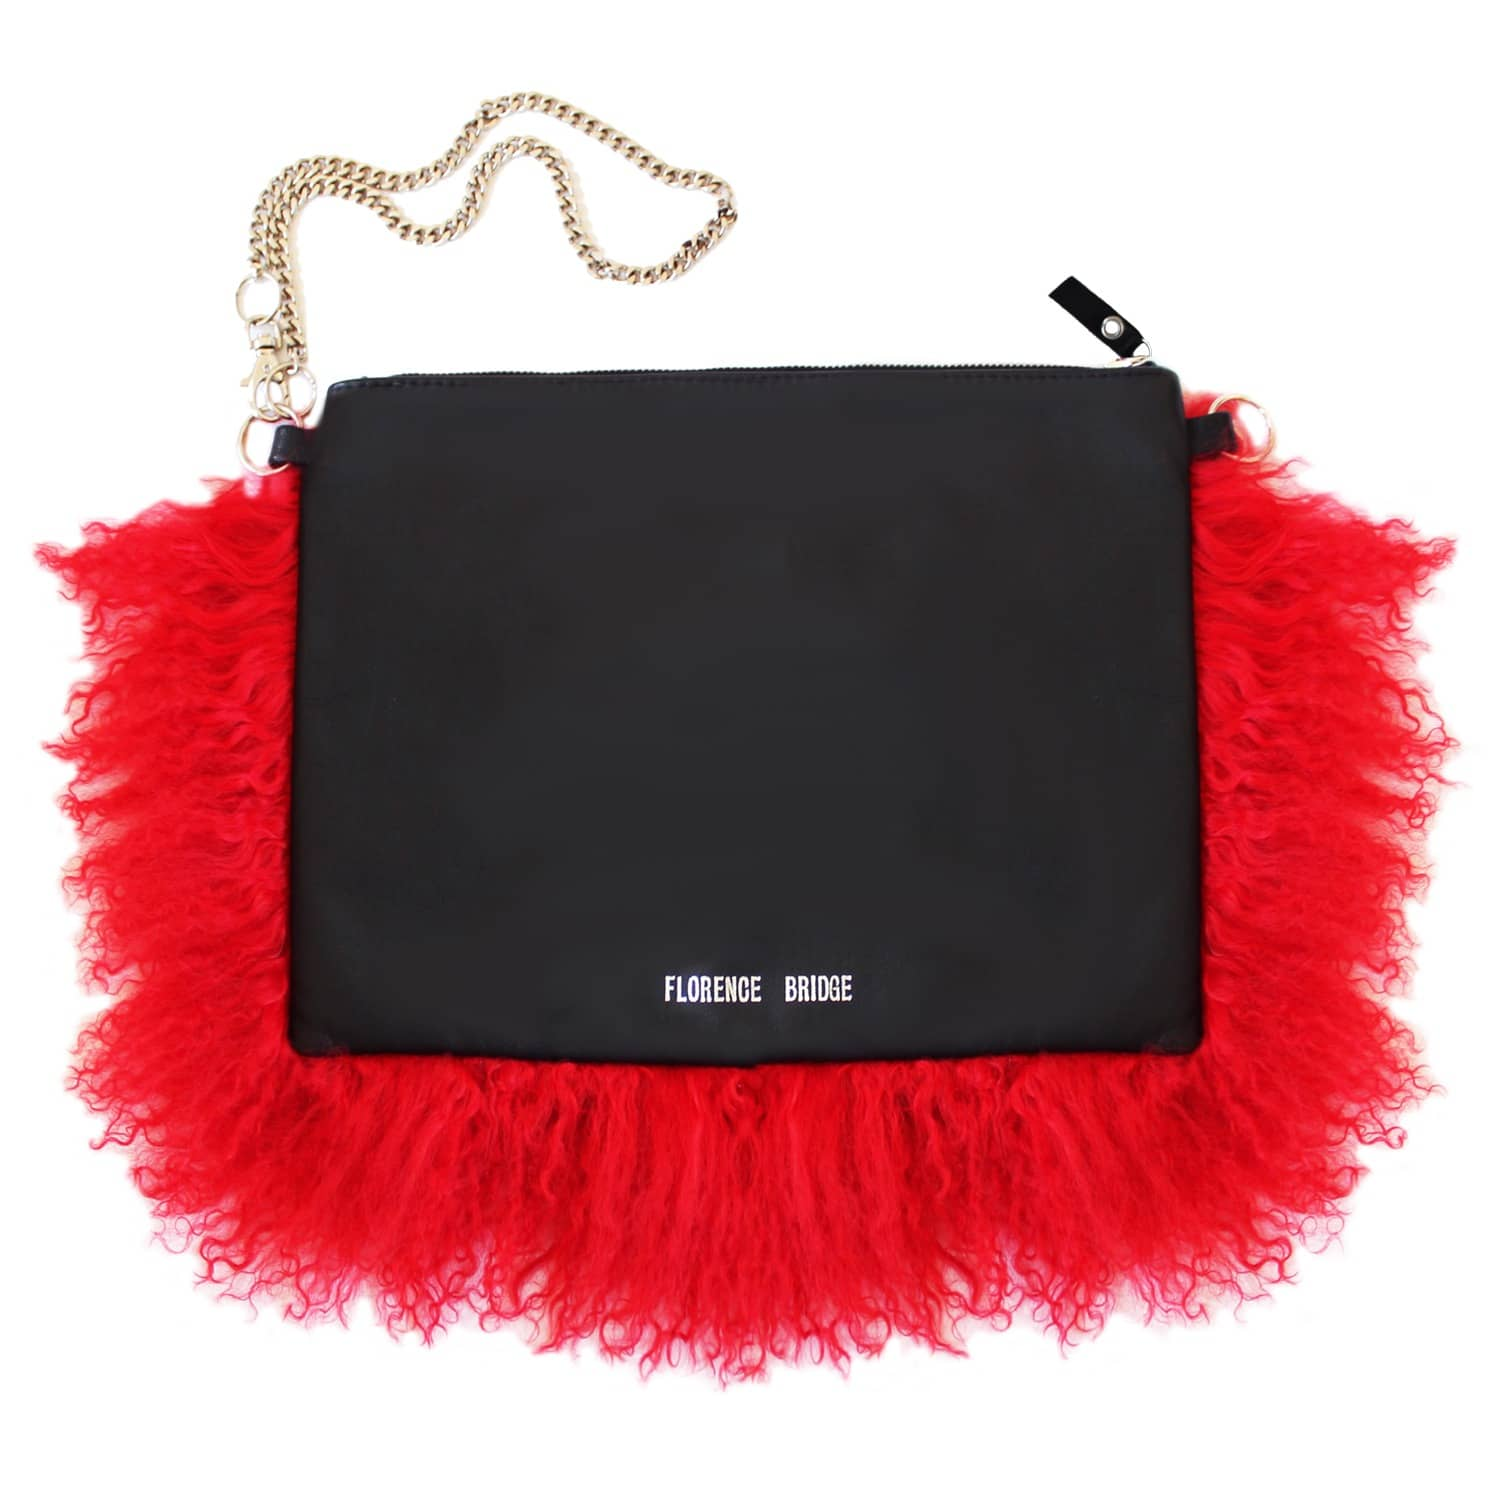 buy best lowest price size 40 Fluffy Bianca Clutch Bag Red by Florence Bridge